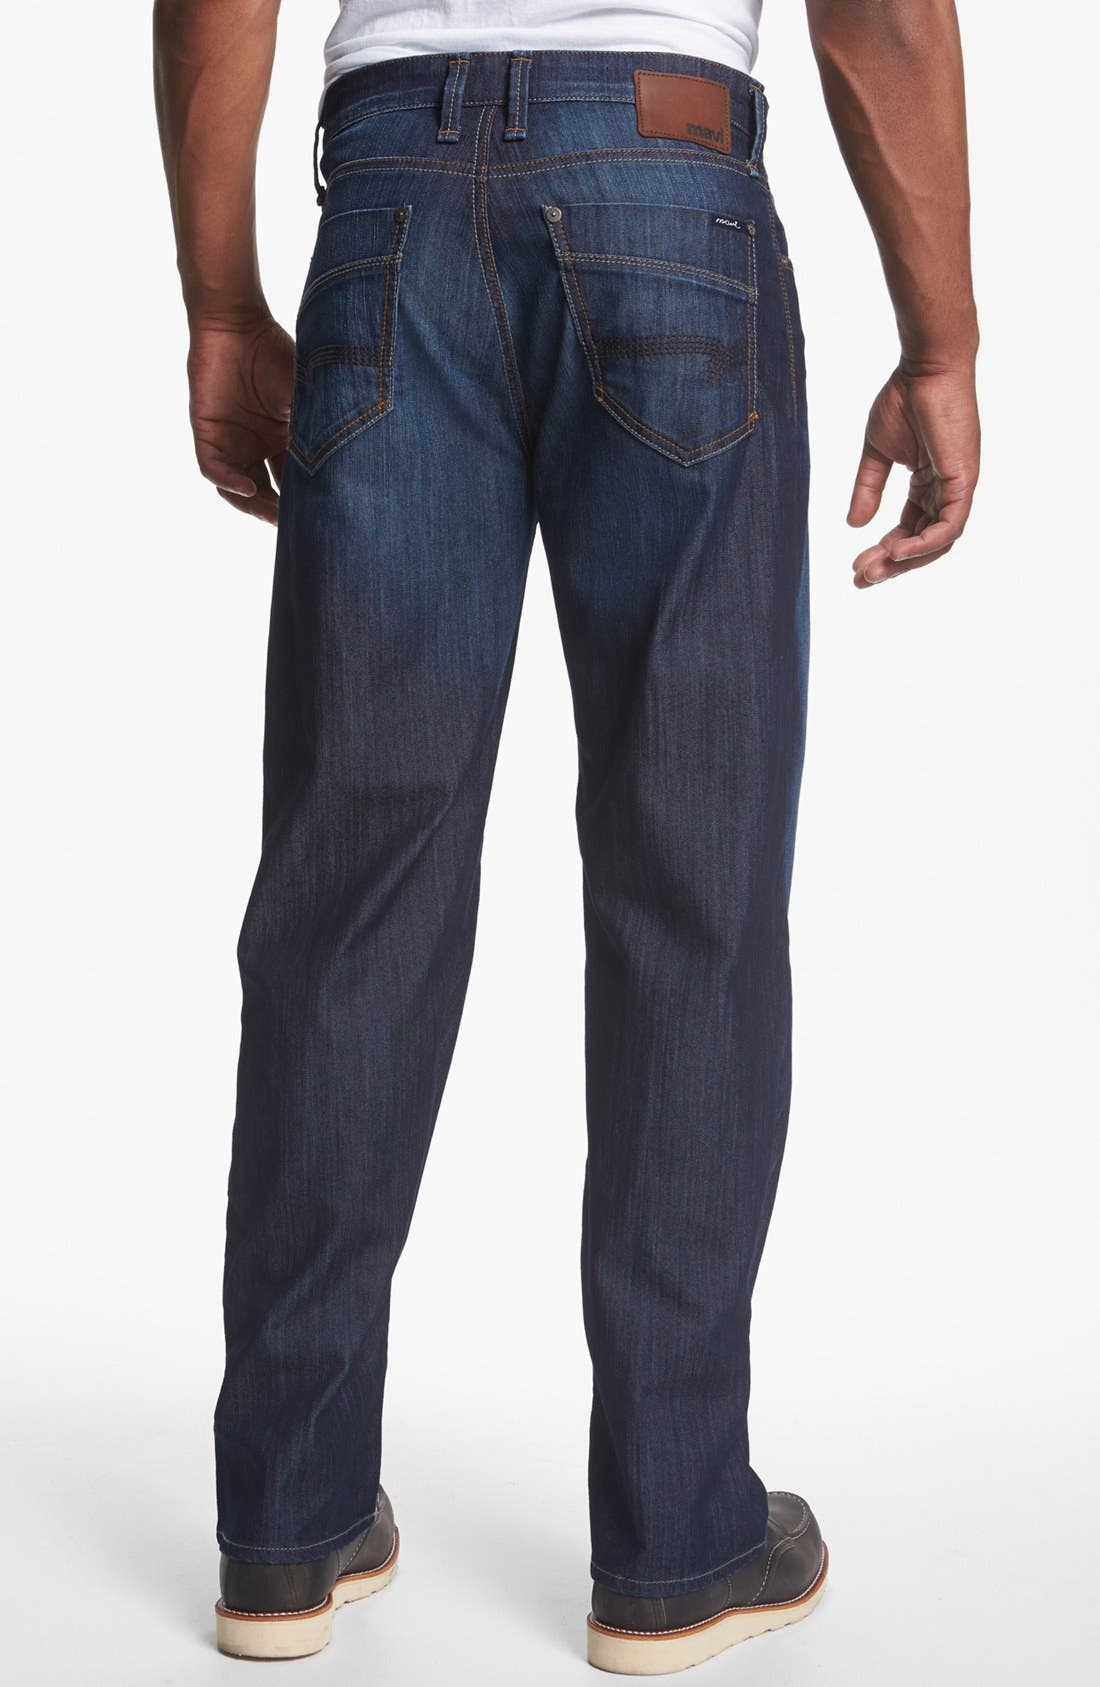 Main Image - Mavi Jeans 'Max' Relaxed Jeans (Rinse Arizona Comfort) (Online Only)